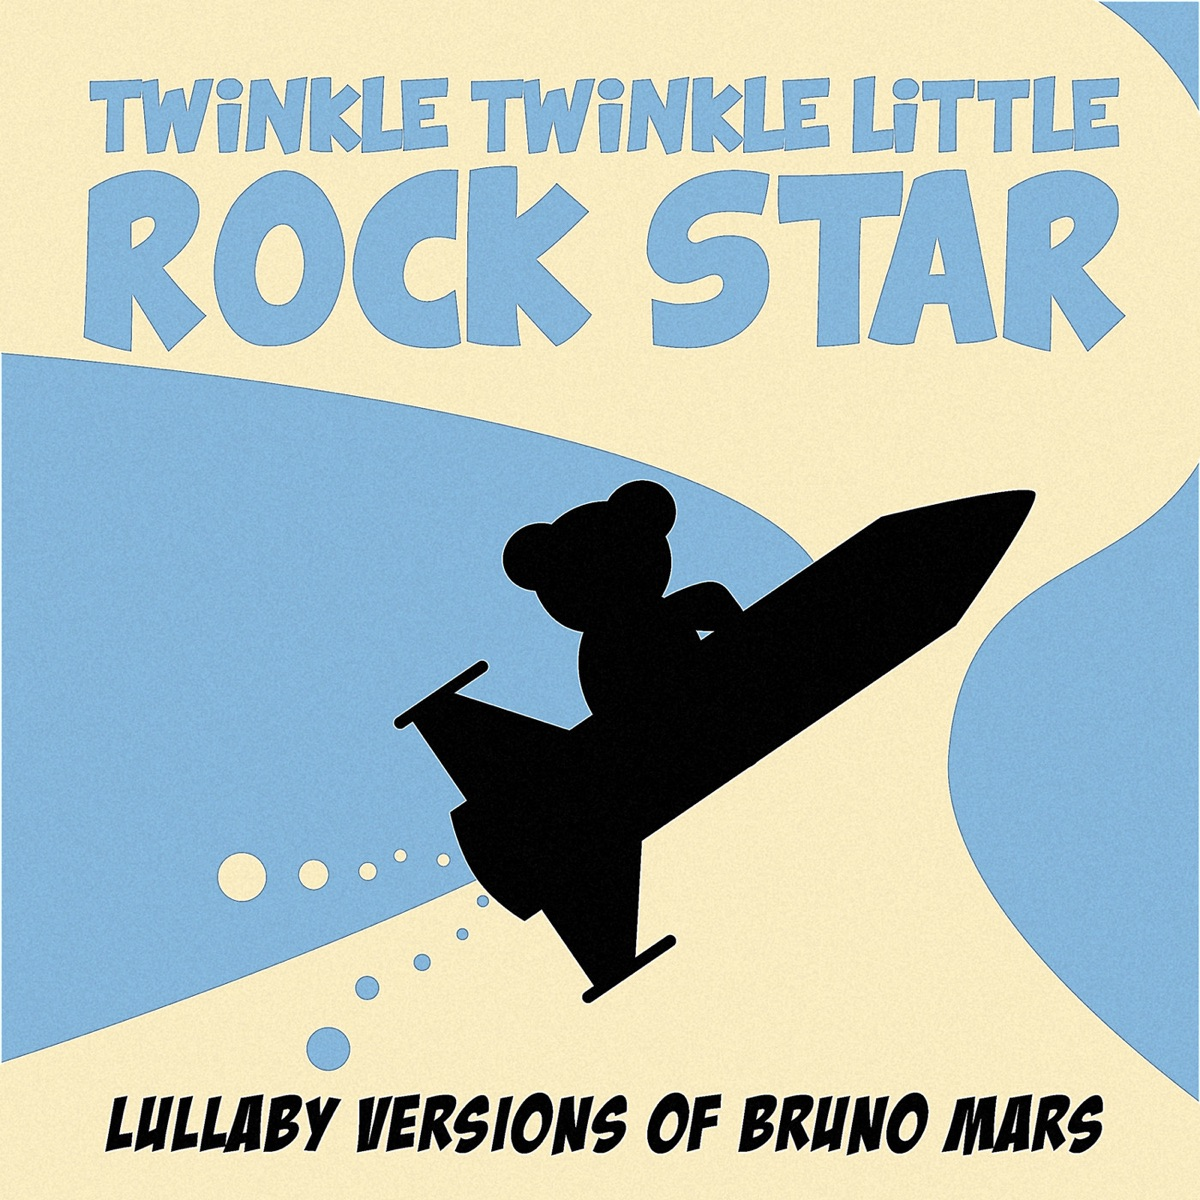 Lullaby Versions of Bruno Mars Twinkle Twinkle Little Rock Star CD cover